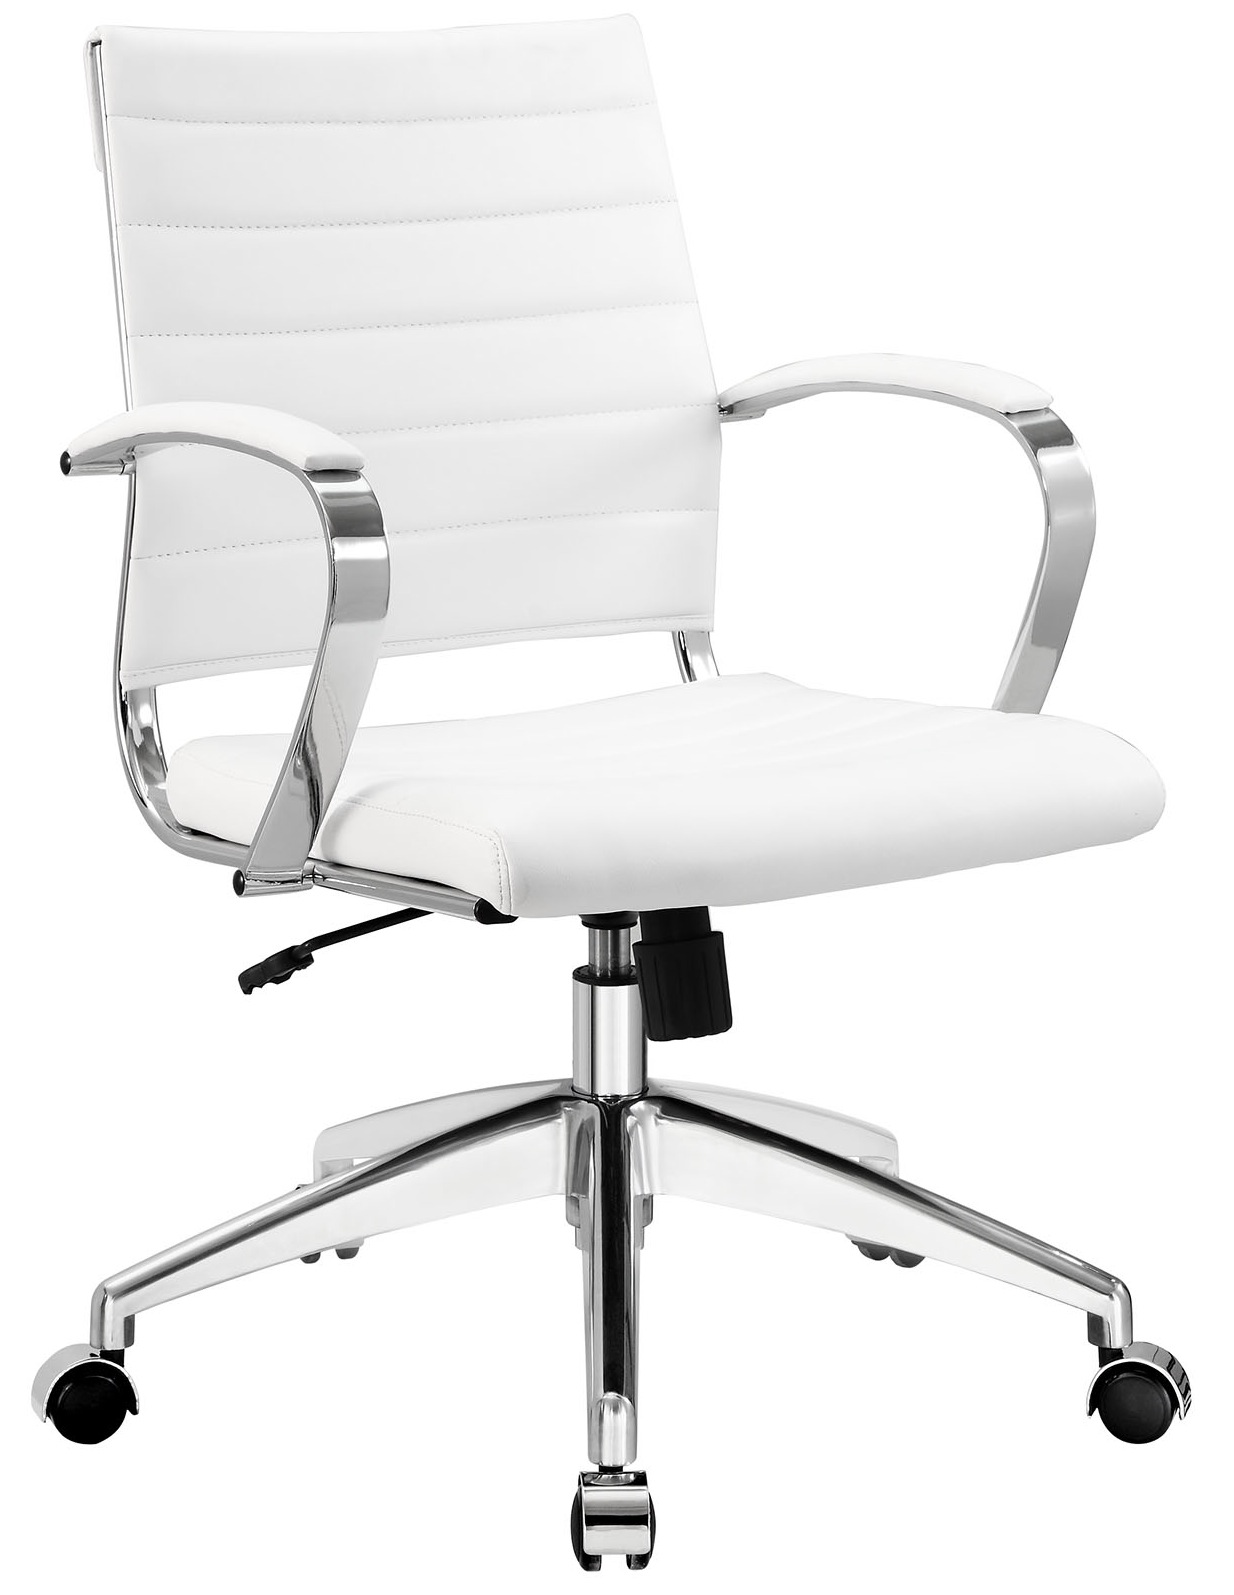 Beau Office Chair White Leather. Interesting Office Ariaofficechairwhitejpg In Office  Chair White Leather